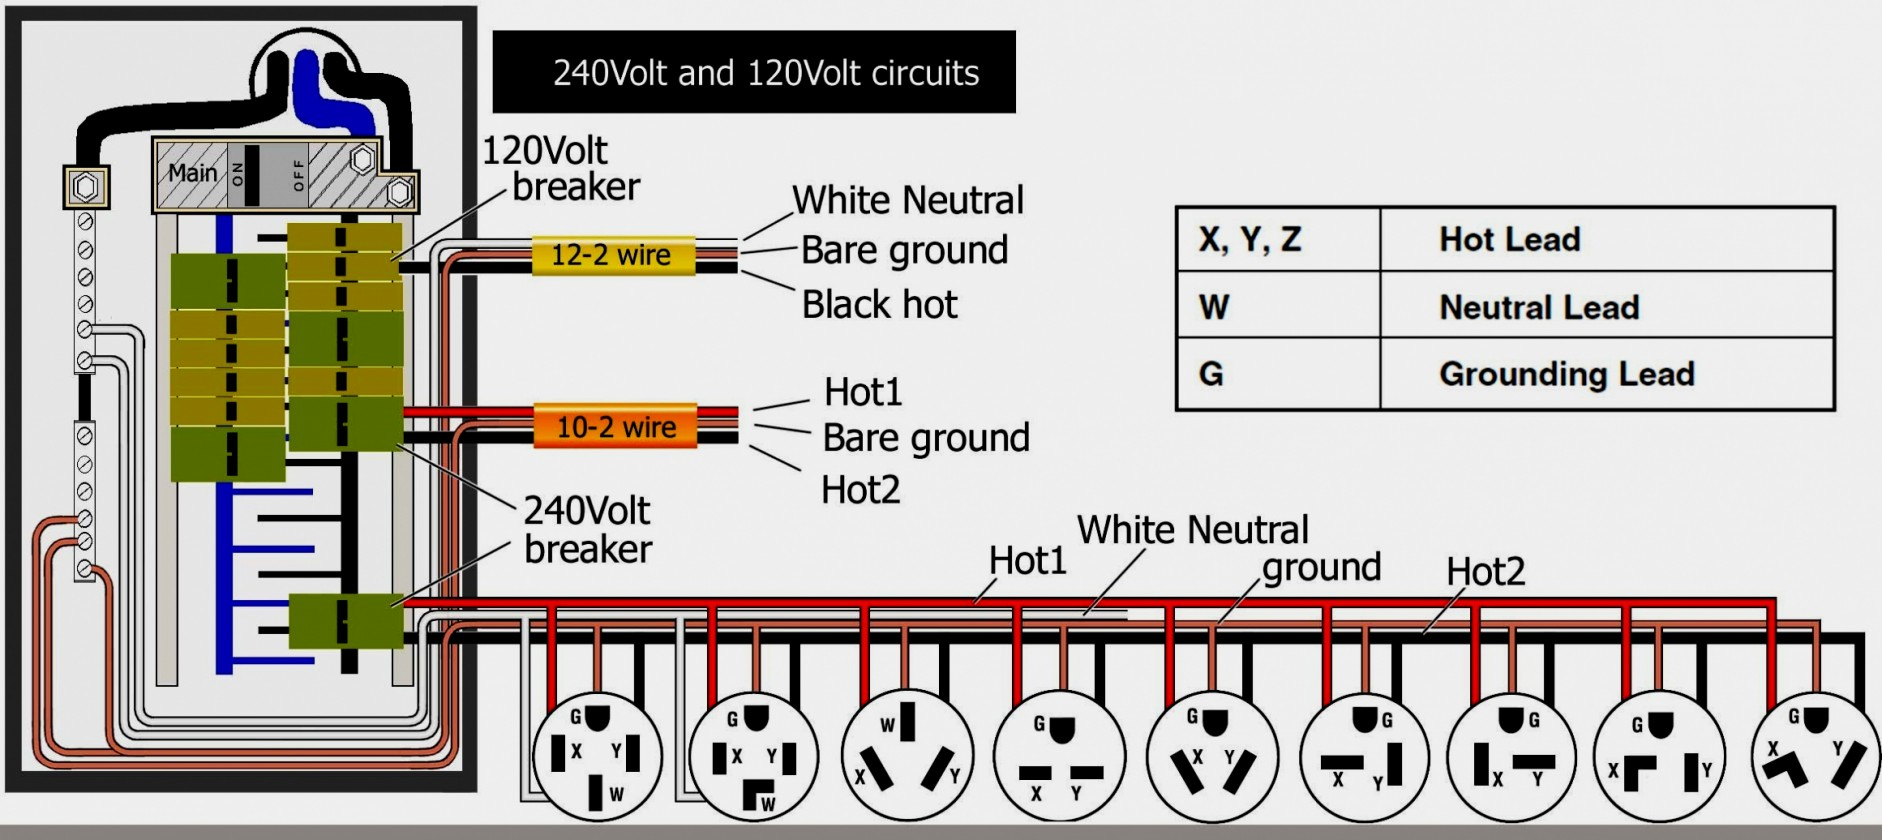 4 Prong Twist Lock Plug Wiring Diagram - Schematics Wiring Diagram - 4 Prong Twist Lock Plug Wiring Diagram